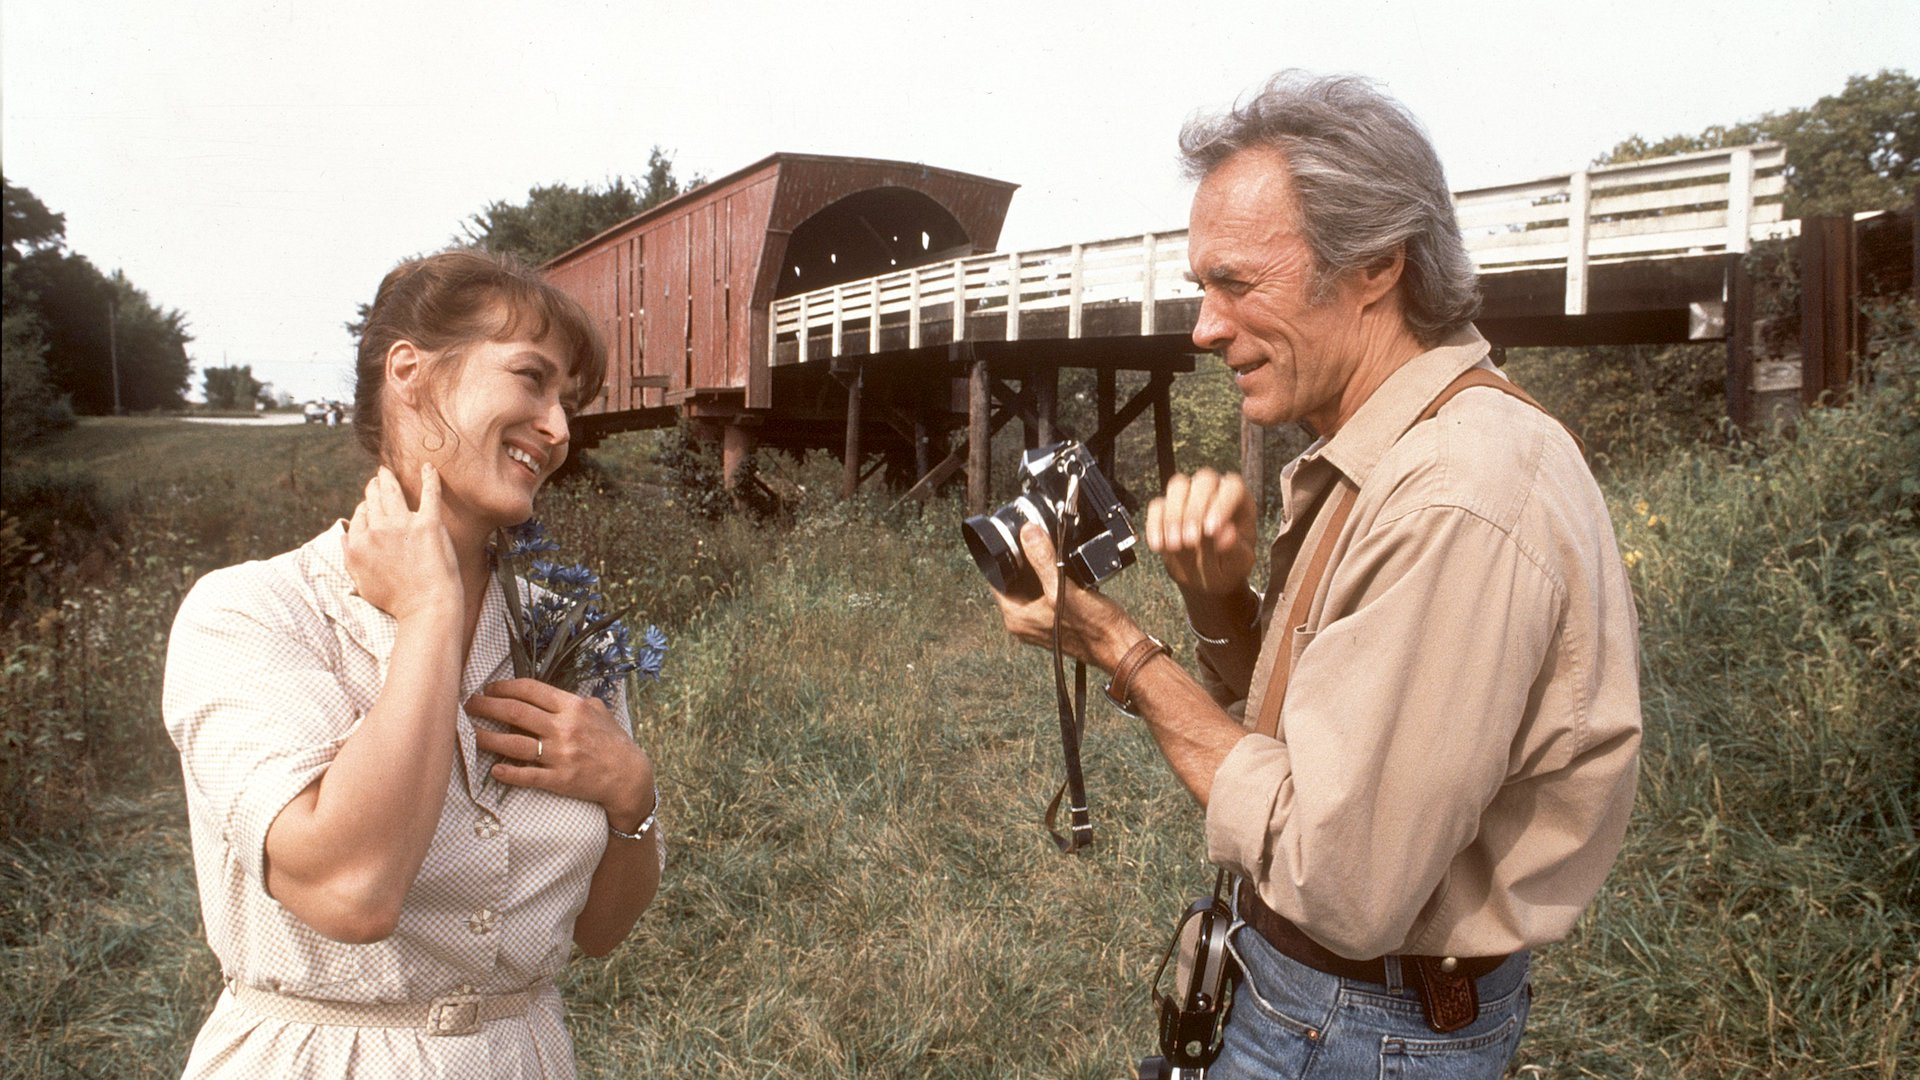 Meryl Streep and Clint Eastwood in Bridges of Madison County. Streep poses with flowers in front of covered bridge. Eastwood holding a camera, appears to be preparing to take her photo.